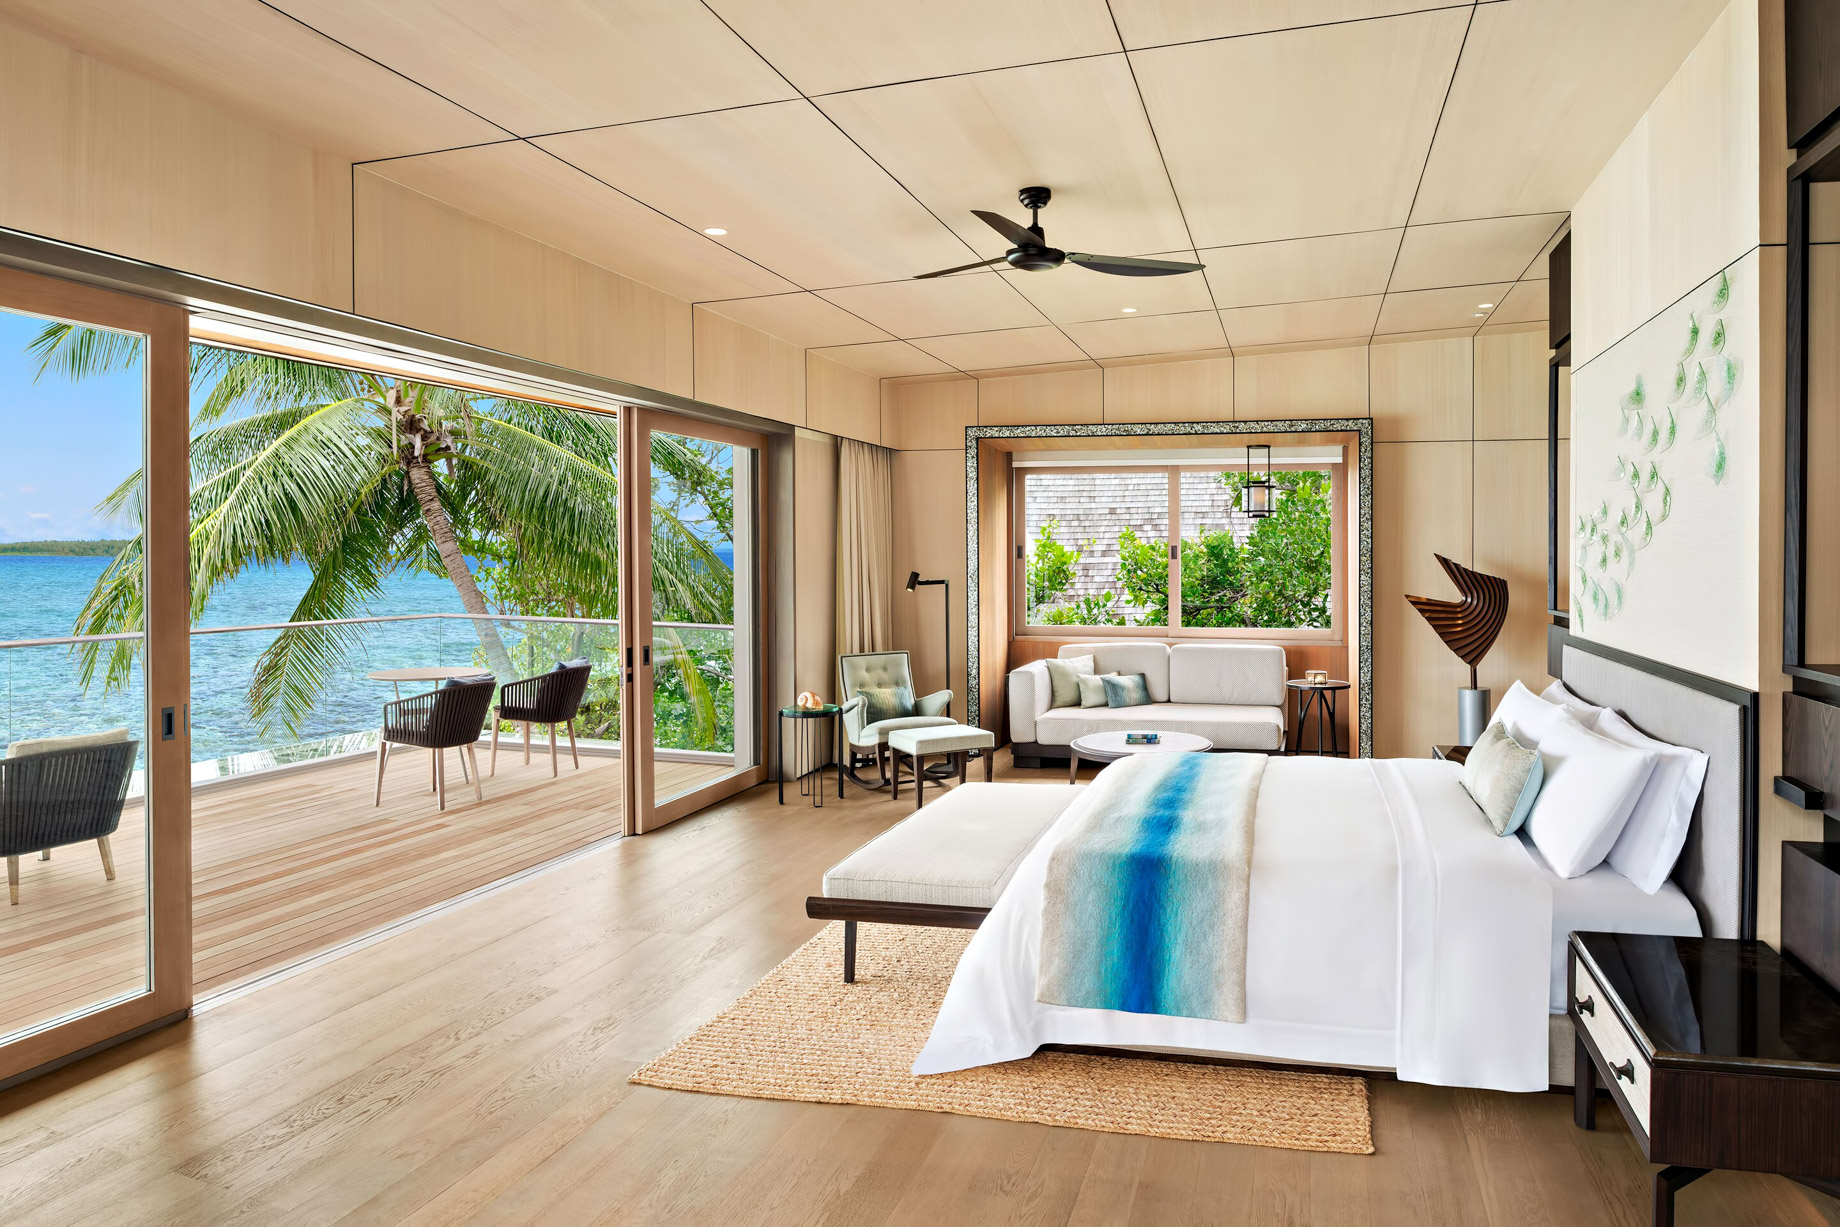 The St. Regis Maldives Vommuli Luxury Resort - Dhaalu Atoll, Maldives - King Two Bedroom Beach Suite